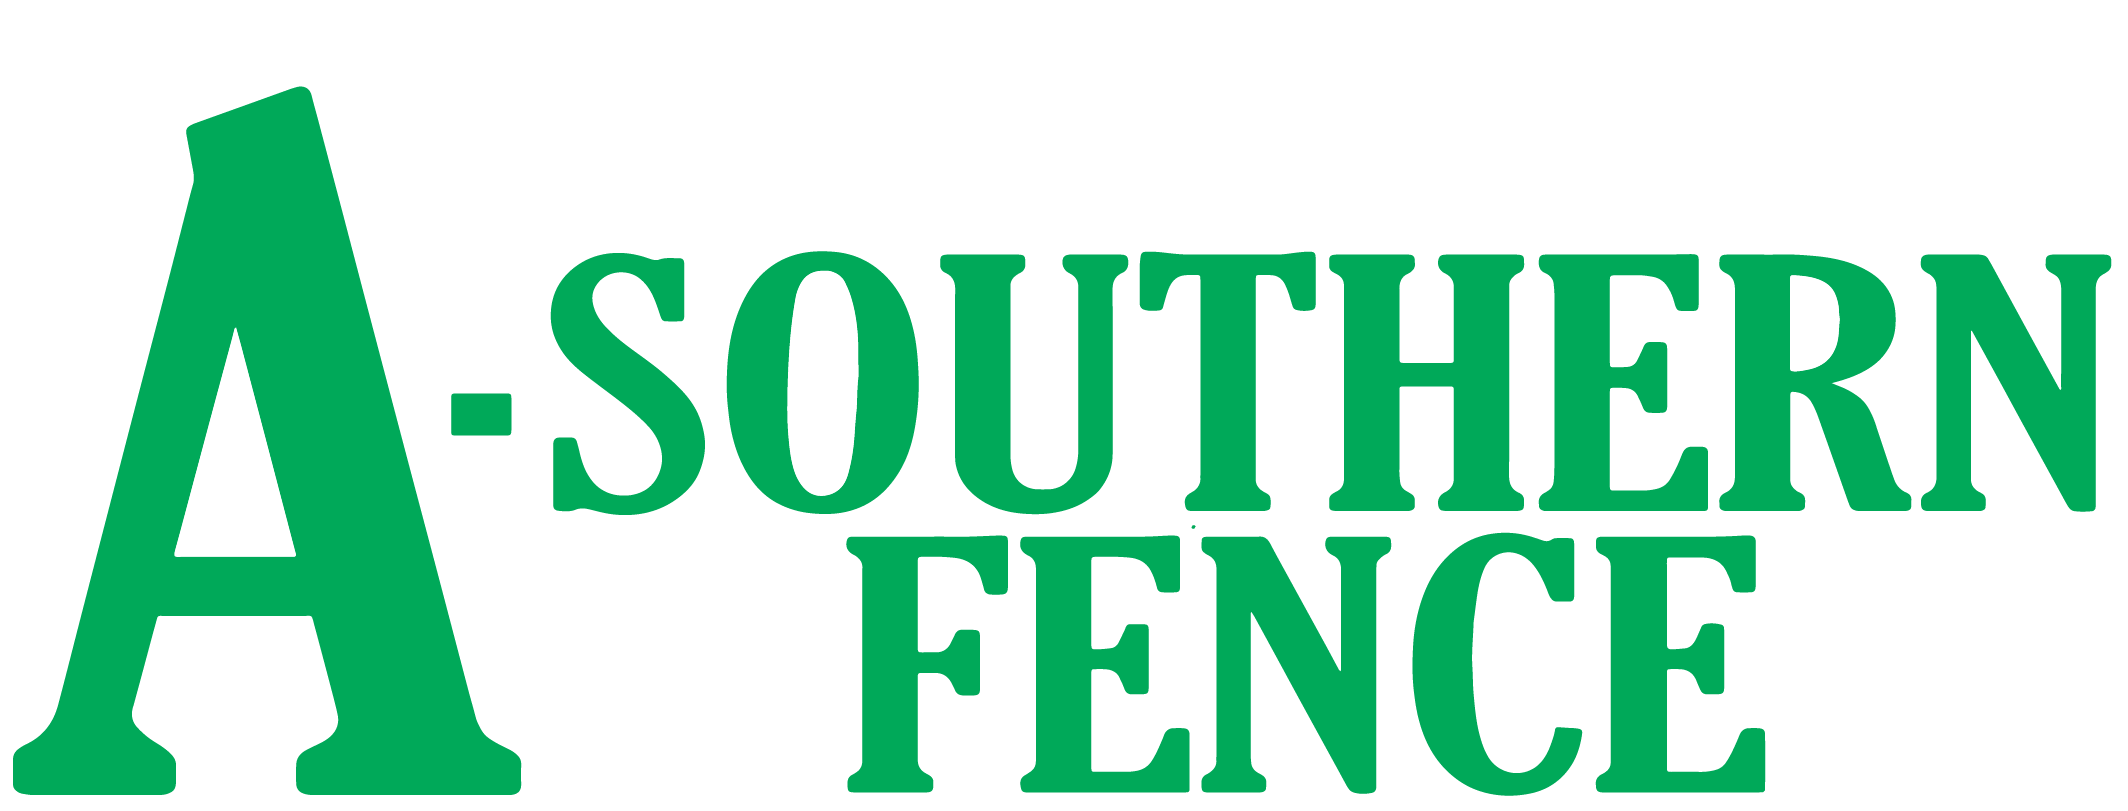 A Southern Fence